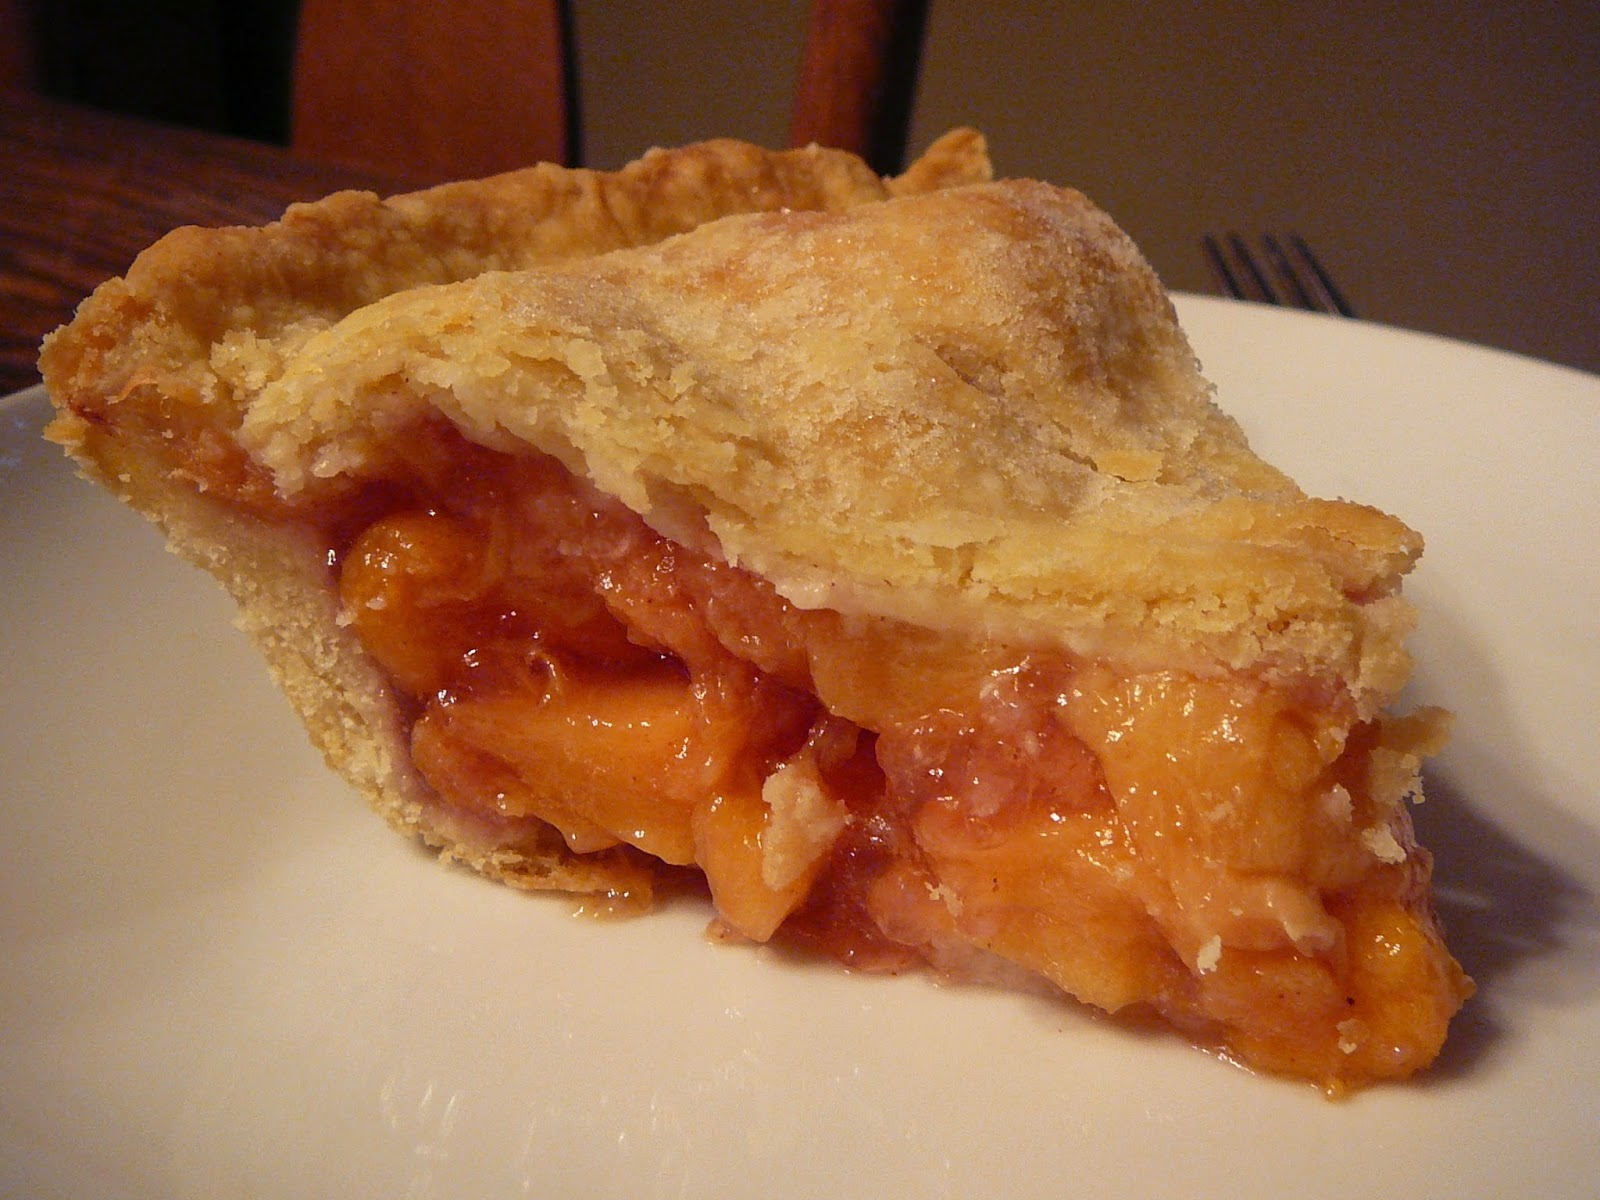 Paula Deenu0027s Make a Fresh Peach Pie and 2 Peach Fillings to Freeze. & The Hidden Pantry: Paula Deenu0027s Make a Fresh Peach Pie and 2 Peach ...